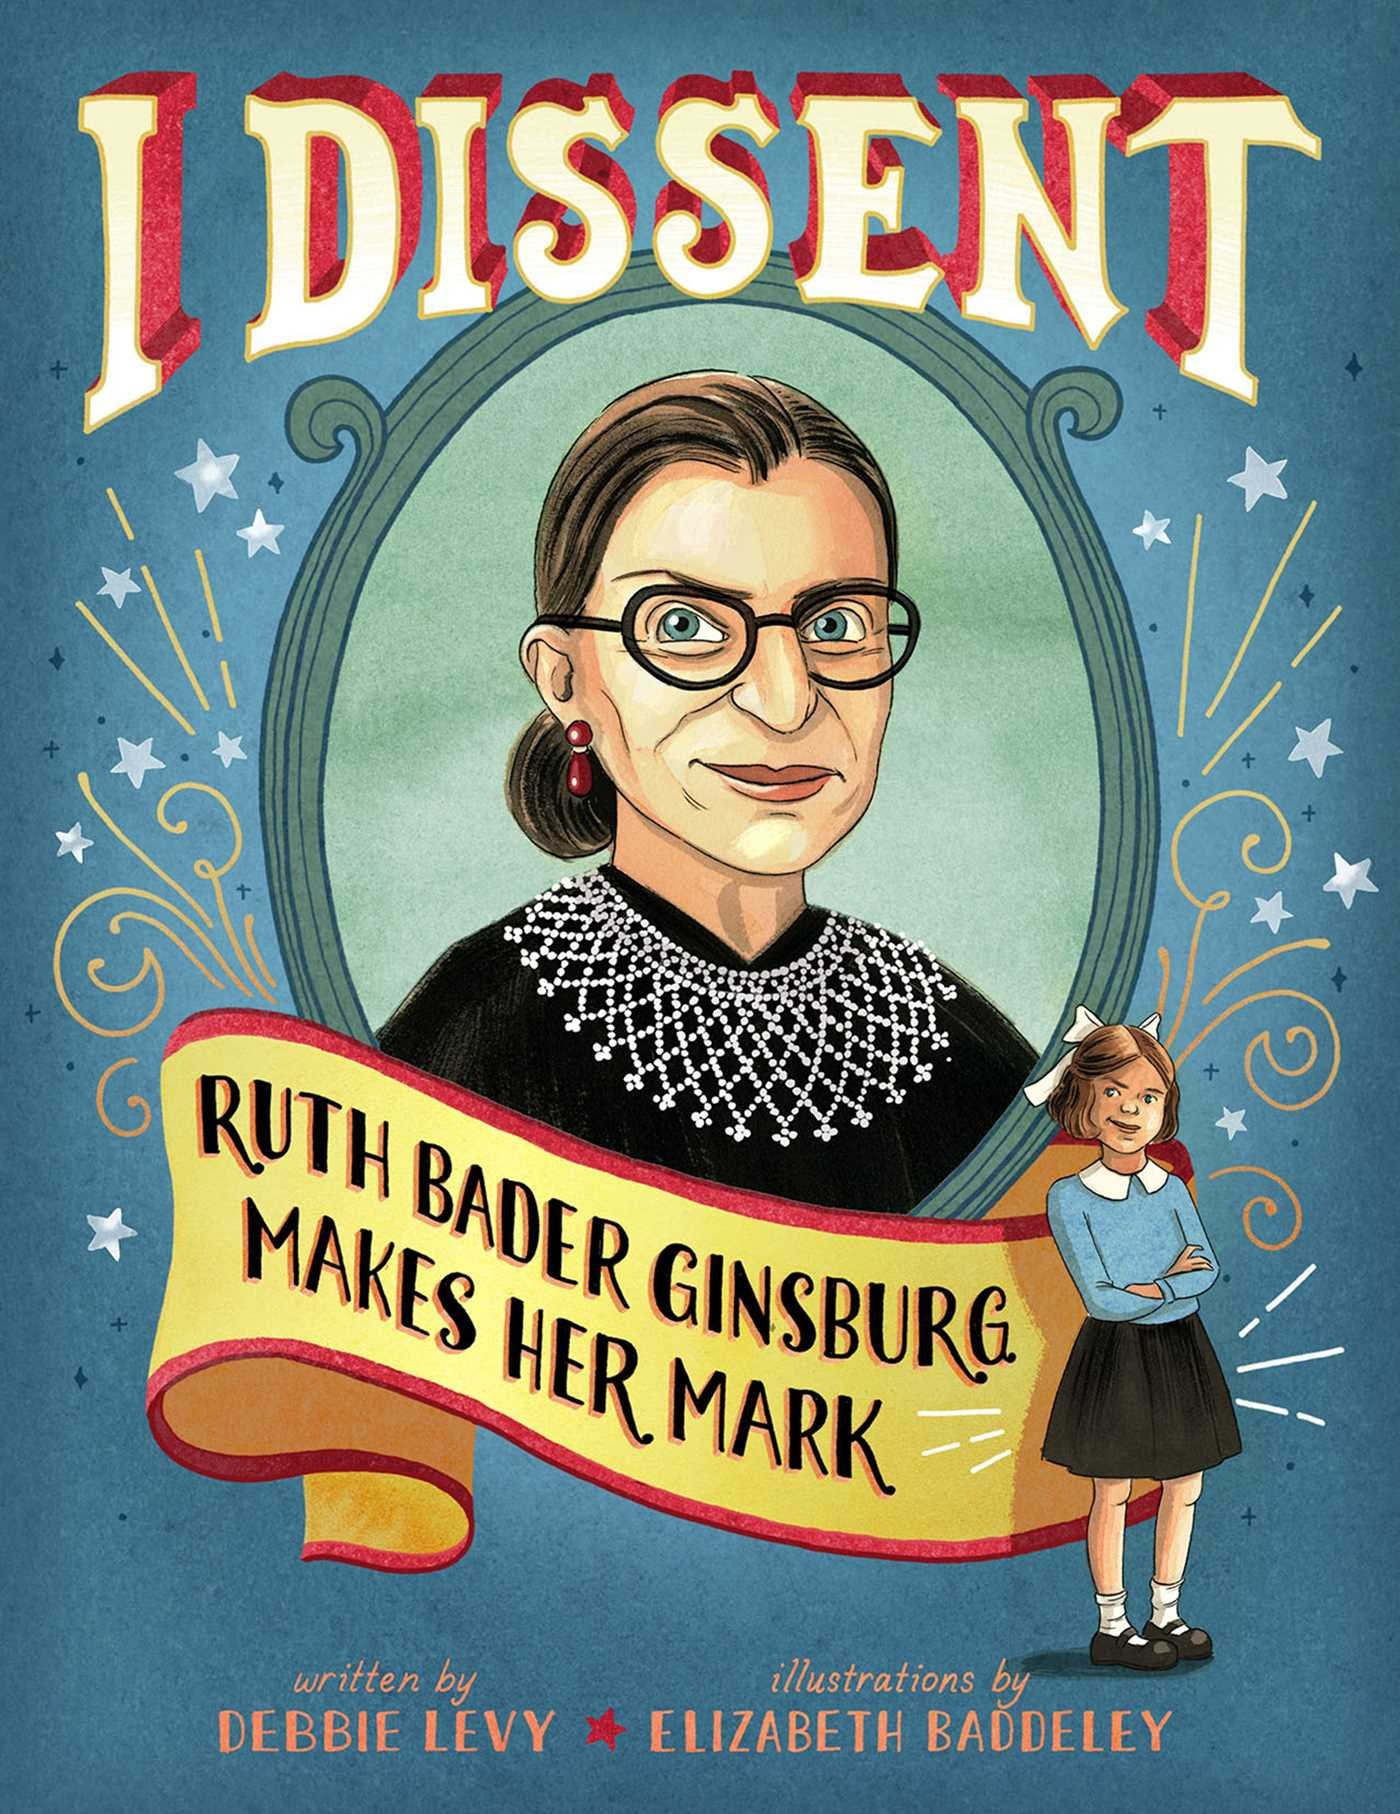 I Dissent Ruth Bader Ginsburg Makes Her Mark